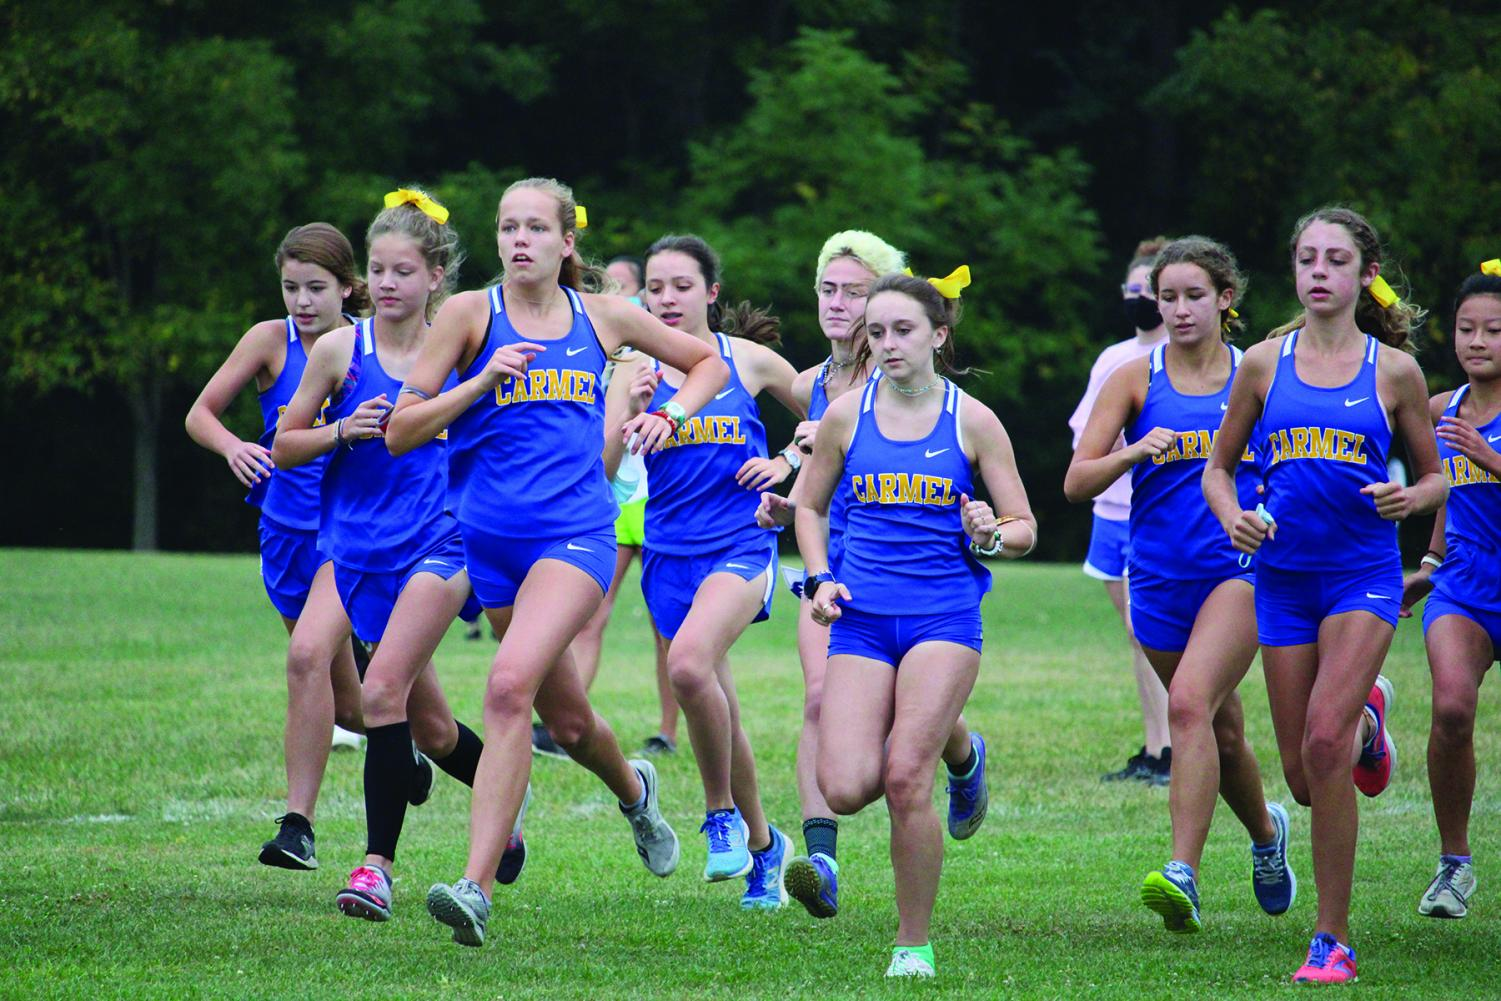 Members of the women's cross-country team run in a race last fall. Taylor Marshall will serve as the team's new coach for the upcoming 2021-22 season.